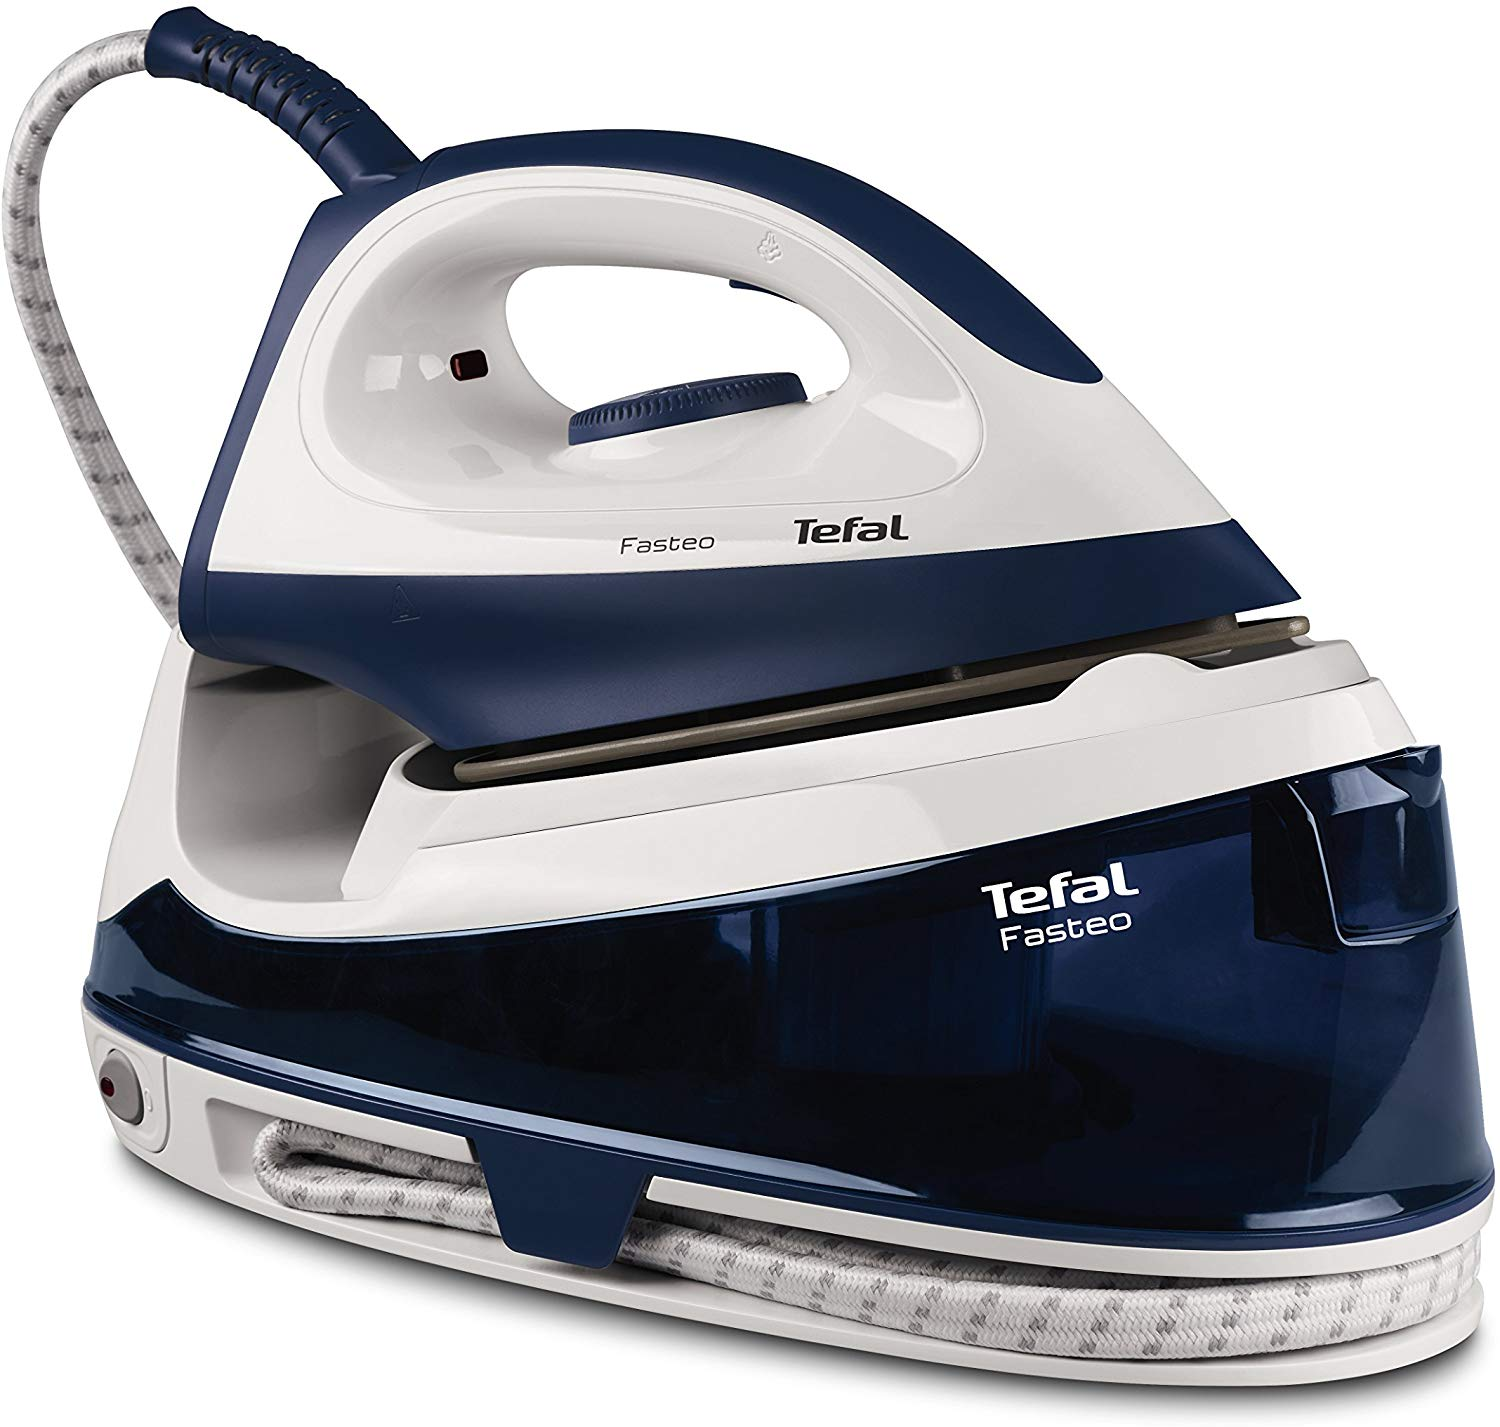 Tefal Fasteo Steam Generator Iron, 2200 W for £59.99 on Amazon